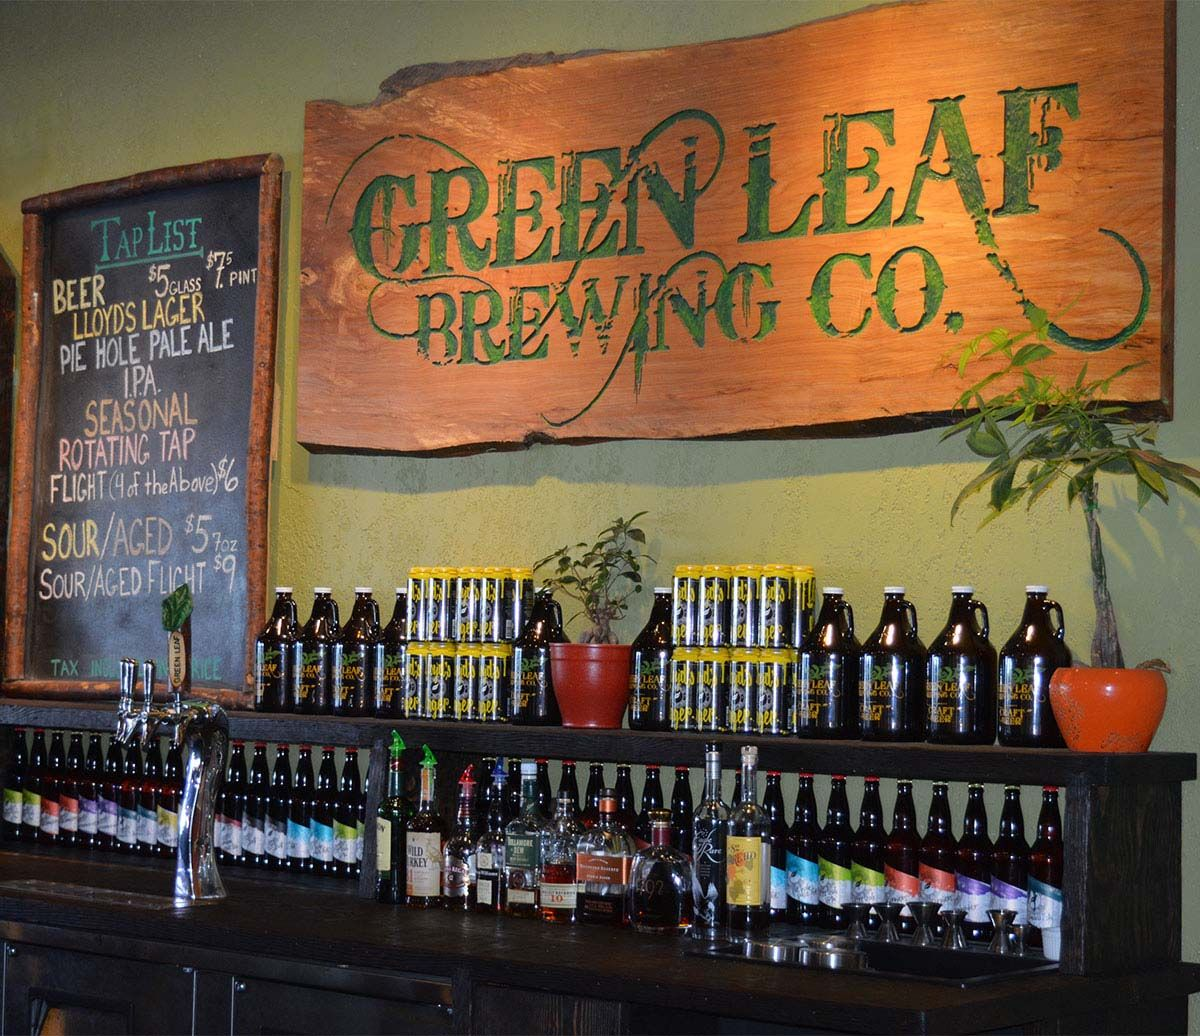 Green Leaf Brewing